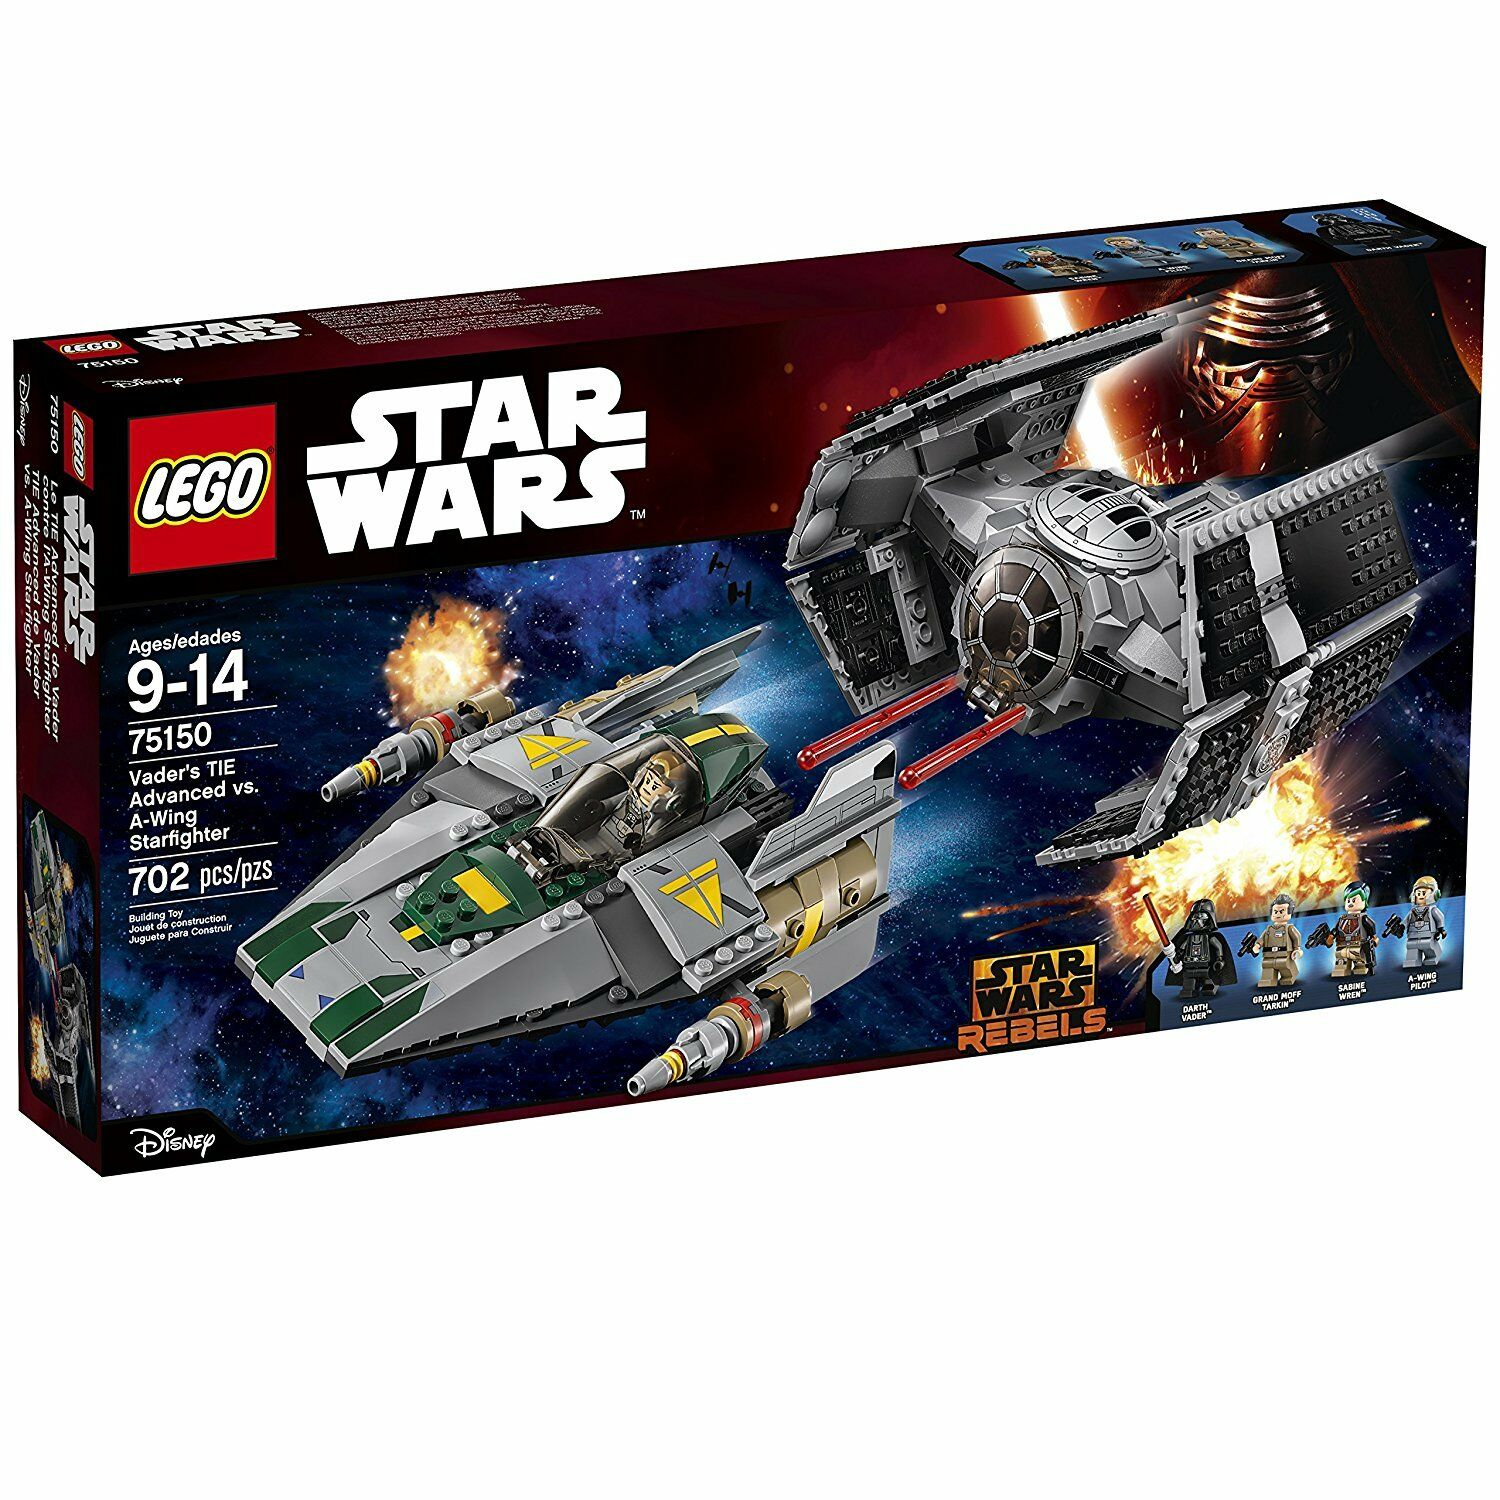 LEGO 75150 STAR WARS VADER'S TIE ADVANCED VS. A-WING STARFIGHTER STARFIGHTER STARFIGHTER d420f0